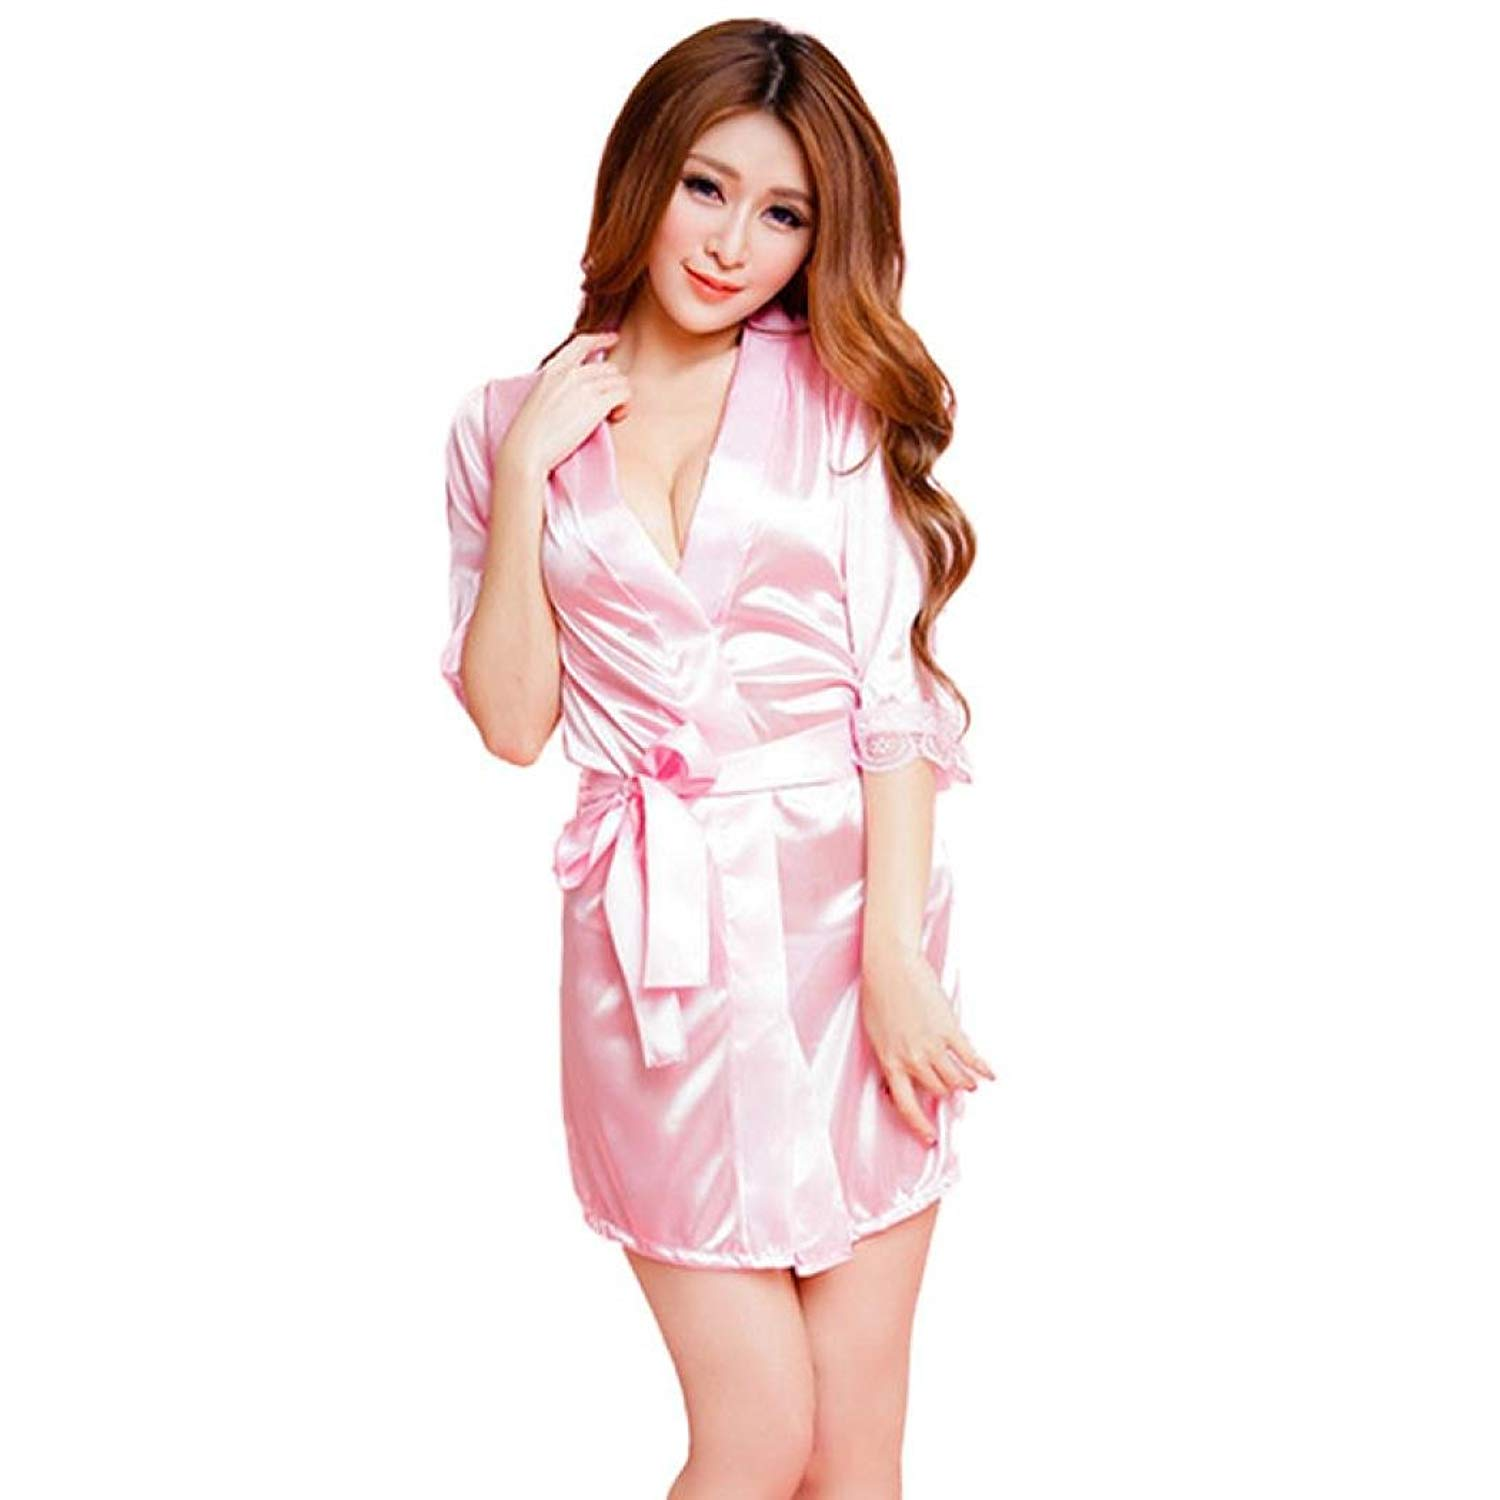 Wqueen Silk Dress Bathrobe Sleepwear Underwear Classic Bathrobe Pure Role-Playing  Lingerie Wild bd4f7a9ed